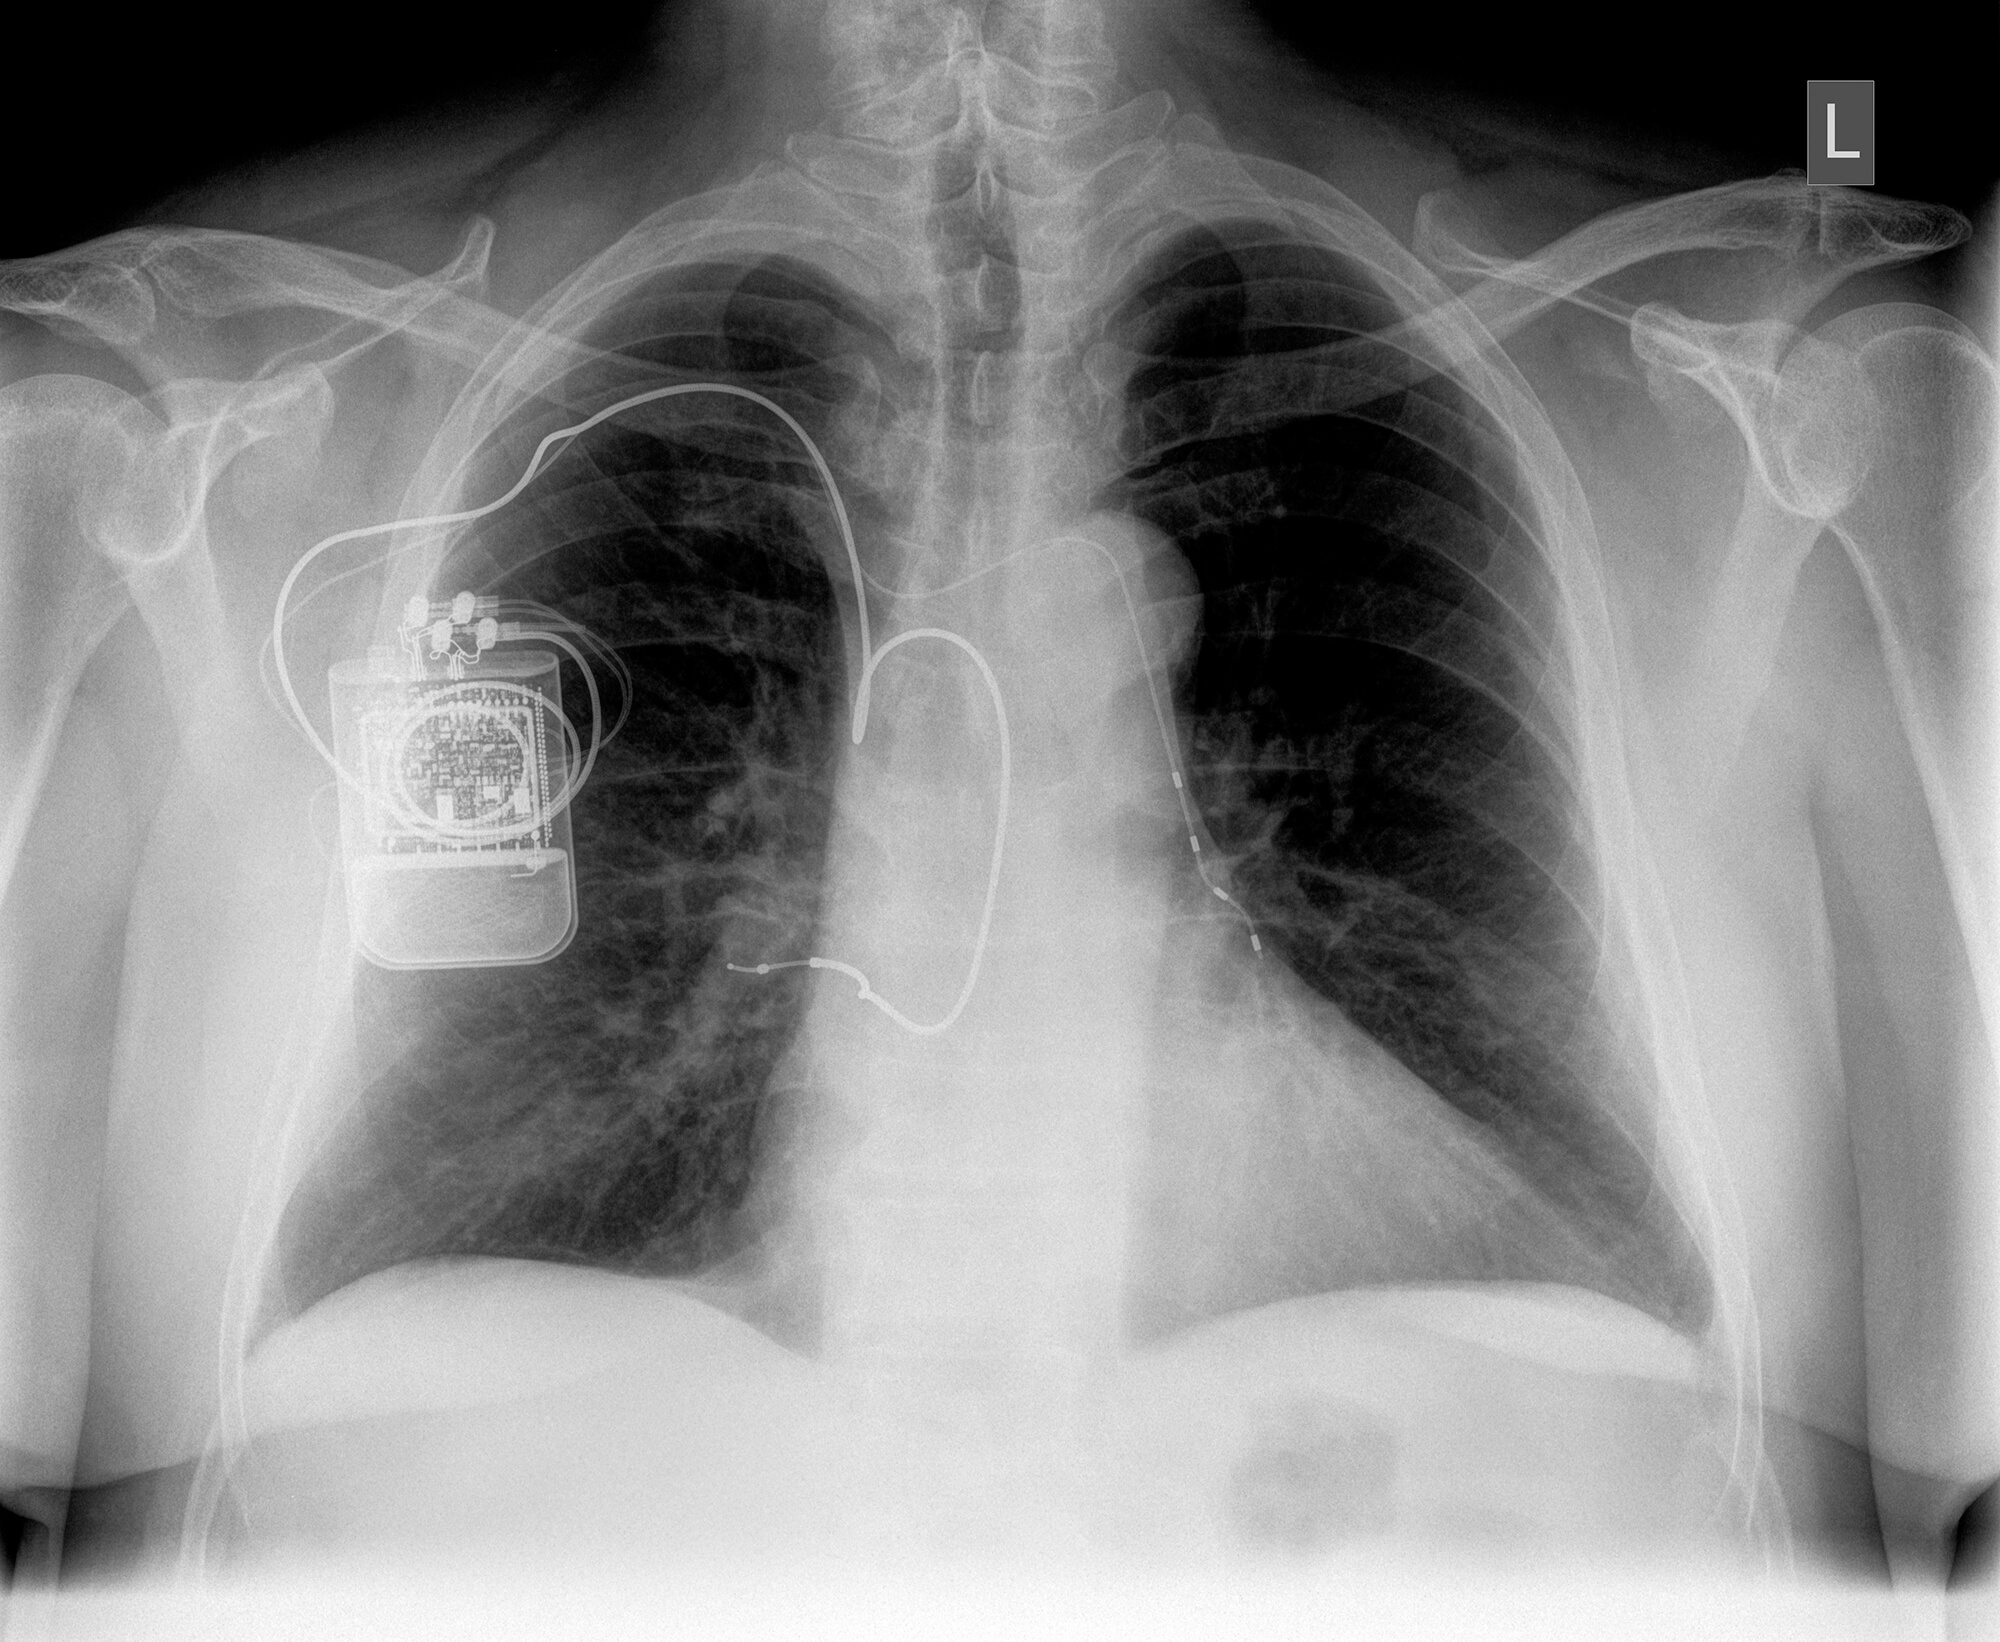 An X-ray shows the implanted device in a patient's chest.